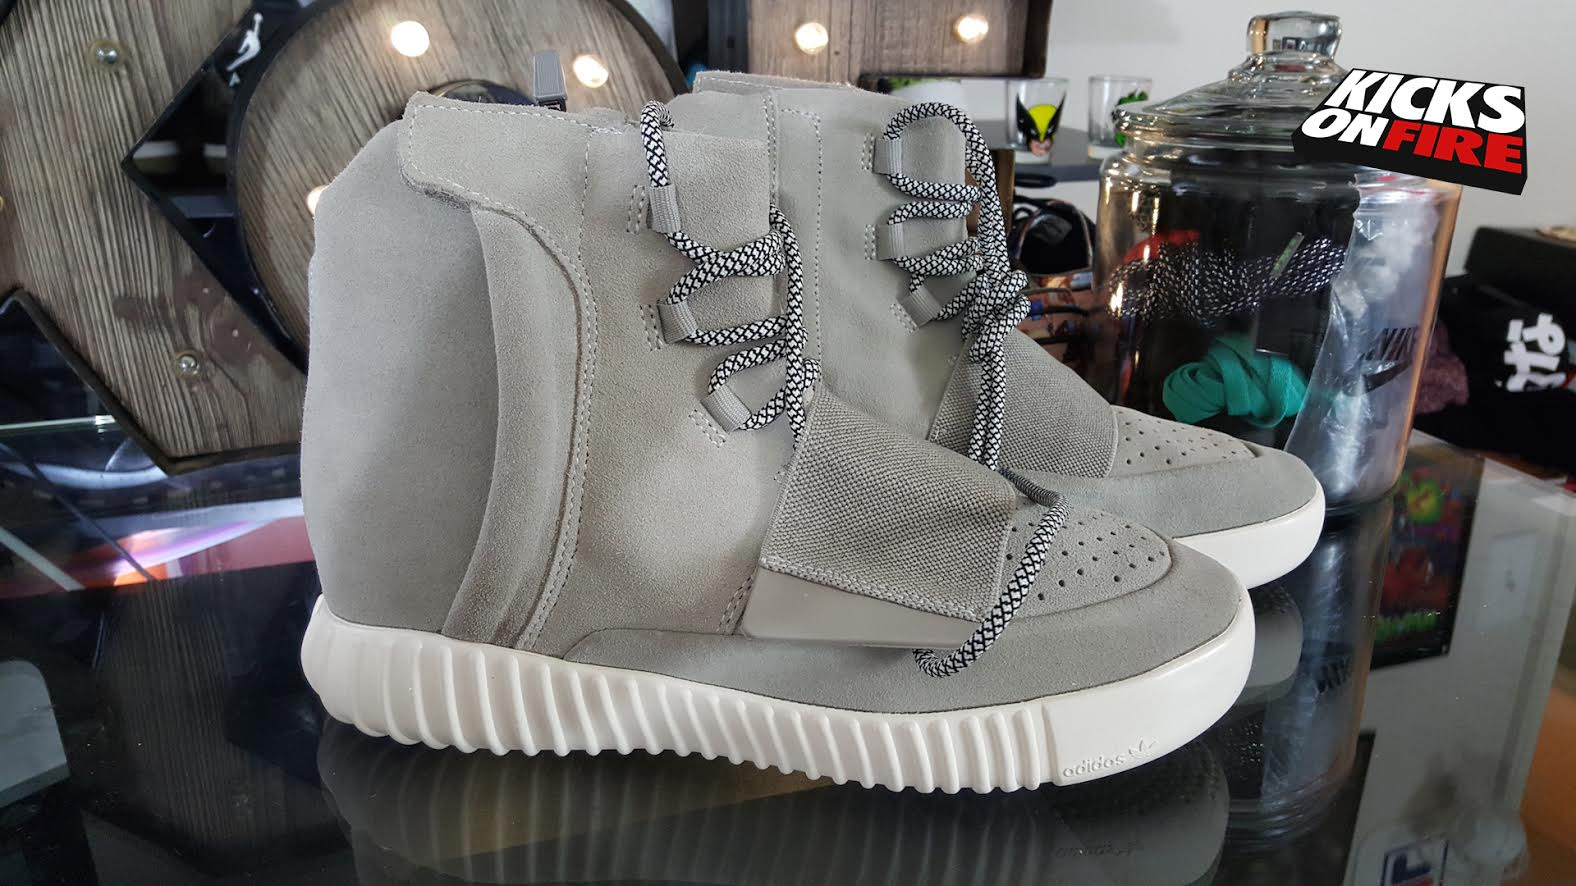 brand new 98906 8a70e This Is What A Fake adidas Yeezy 750 Boost Looks Like (Video ...